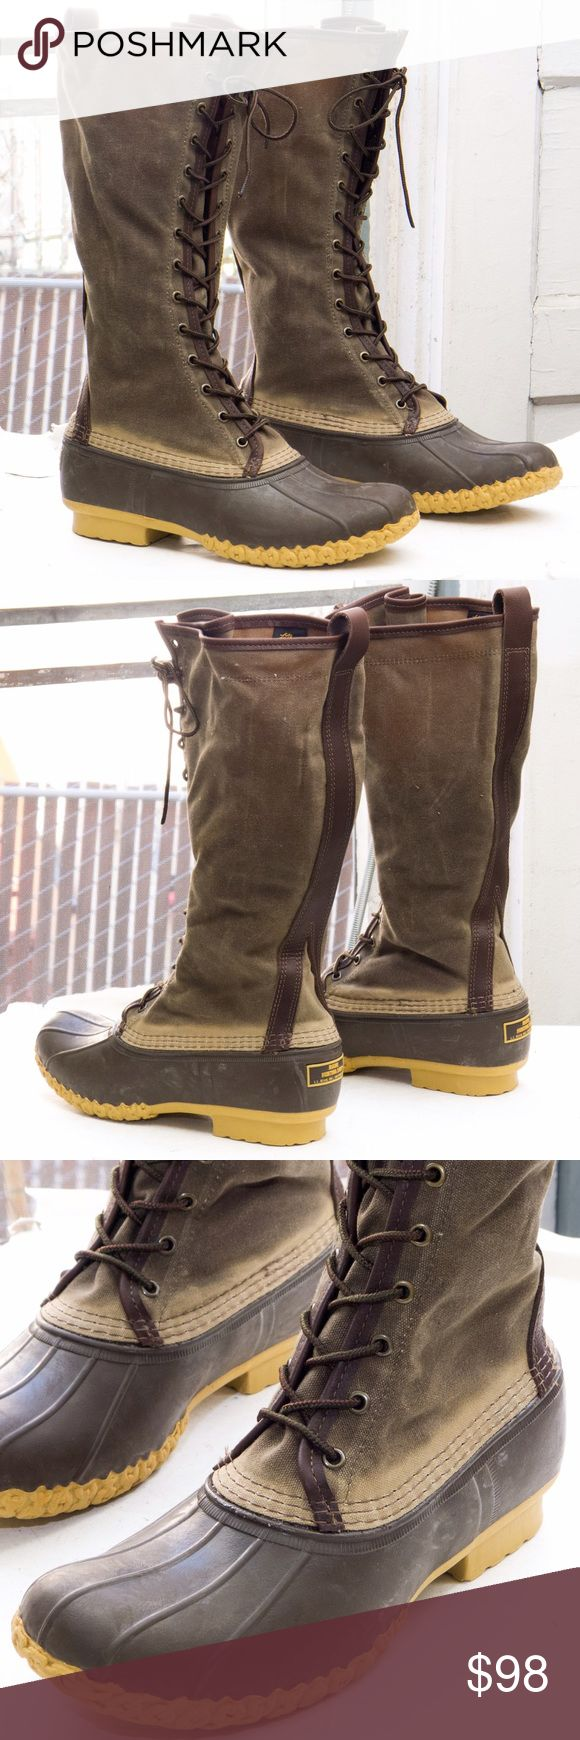 "LL Bean duck boot, waxed canvas/Maine hunting shoe Out of stock and hard to find!             16"" height. Rugged waxed canvas upper. Iconic rubber chain-tread bottom. Made in USA.                  Perfect condition! New and unworn. L.L. Bean Shoes Lace Up Boots"